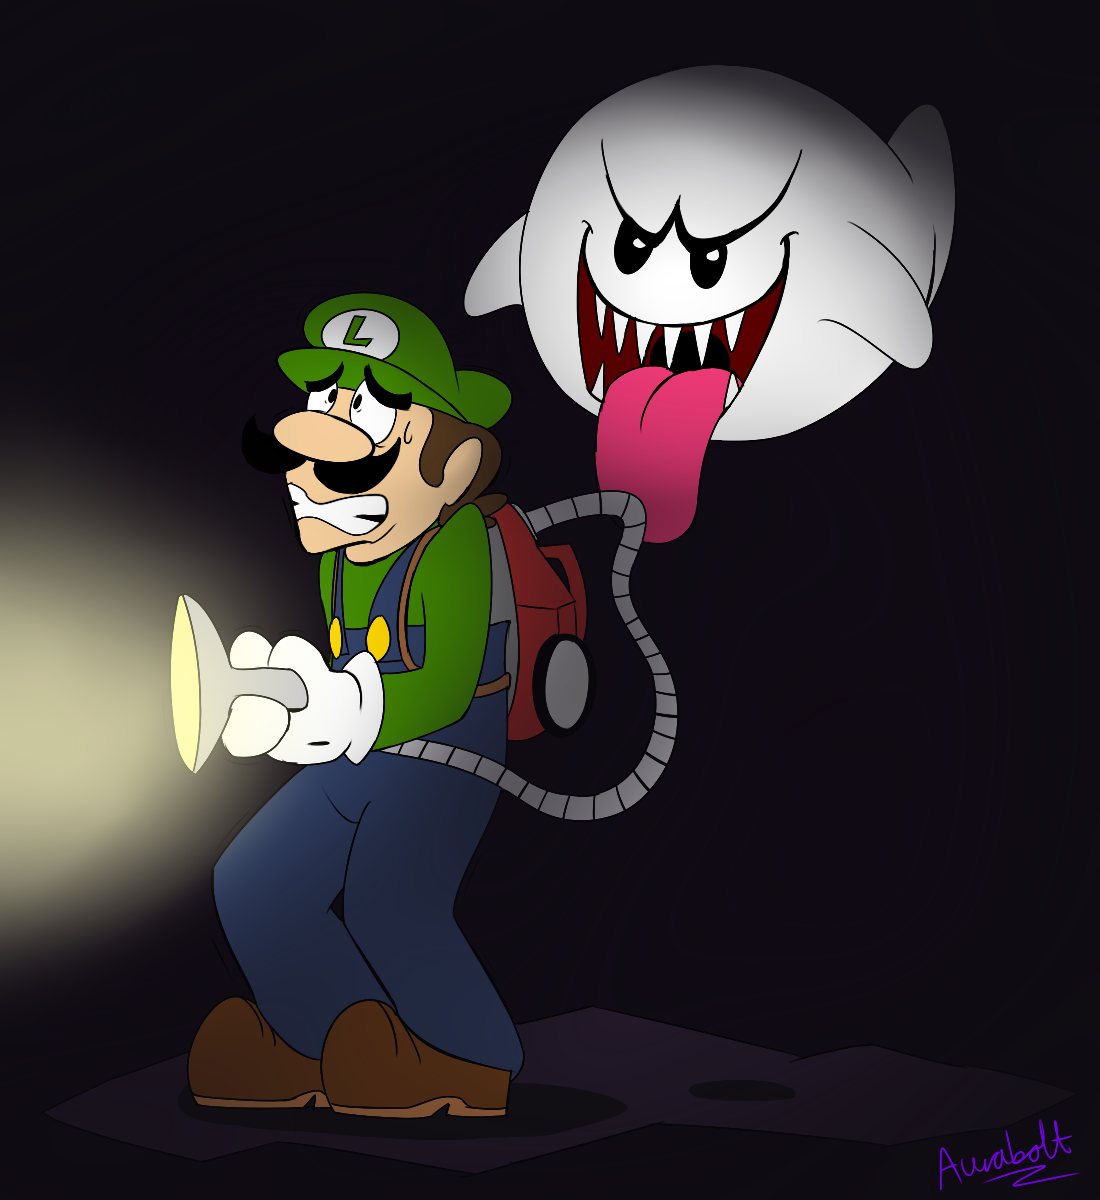 Ghostly clipart spoopy The by ProfessorAurabolt  Luigi